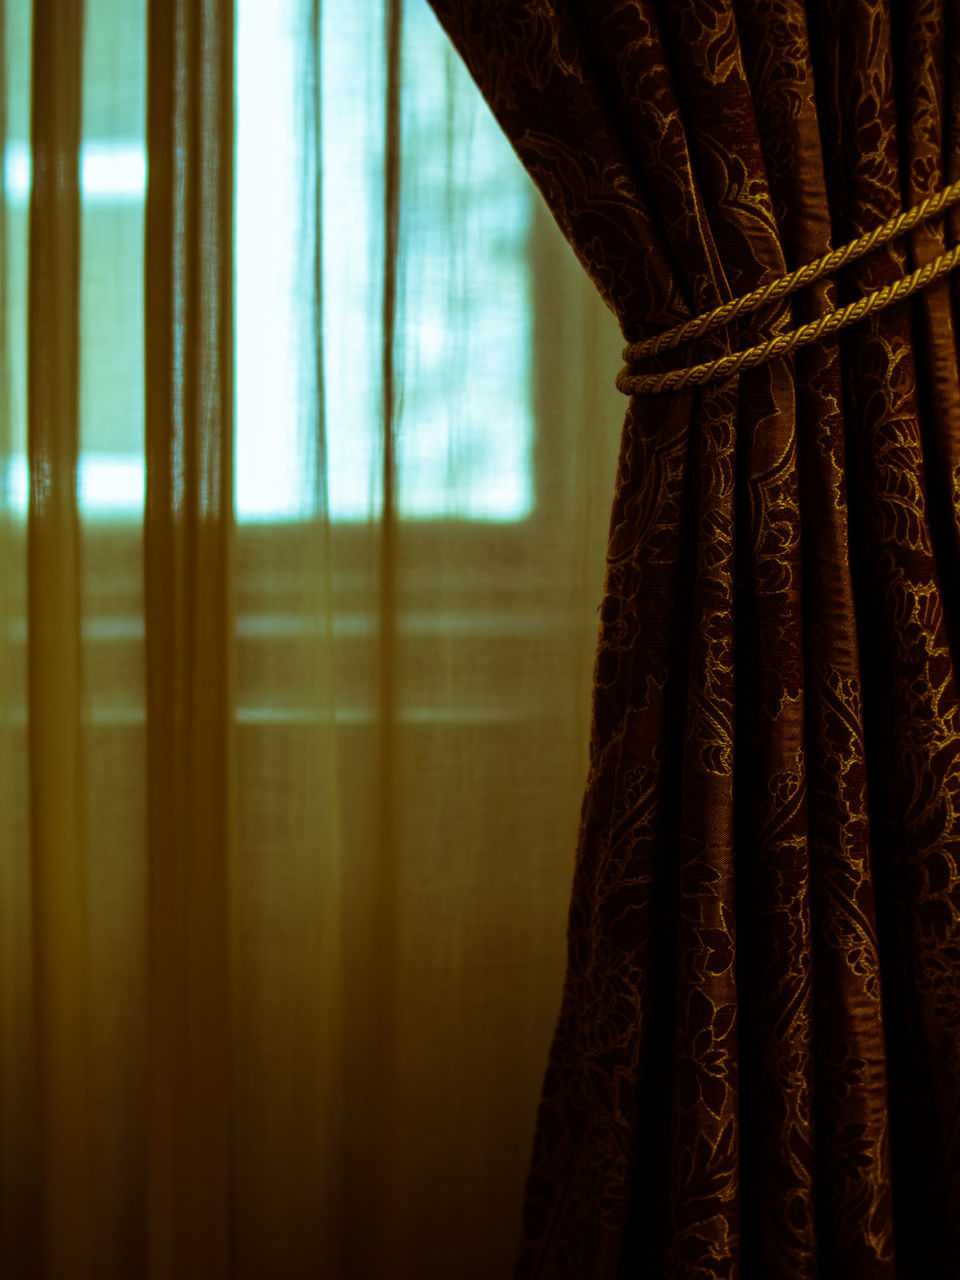 curtain, window, drapes, indoors, textile, close-up, no people, day